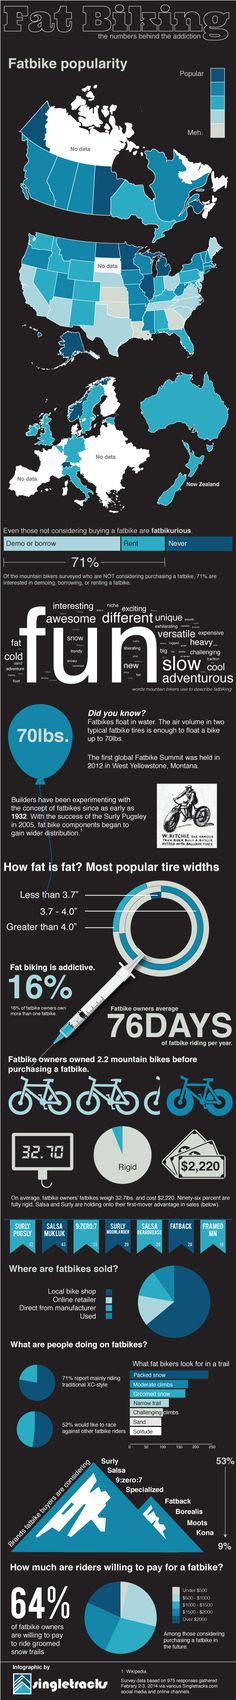 A fun infographic with some interesting facts about the growing popularity of fat bikes.